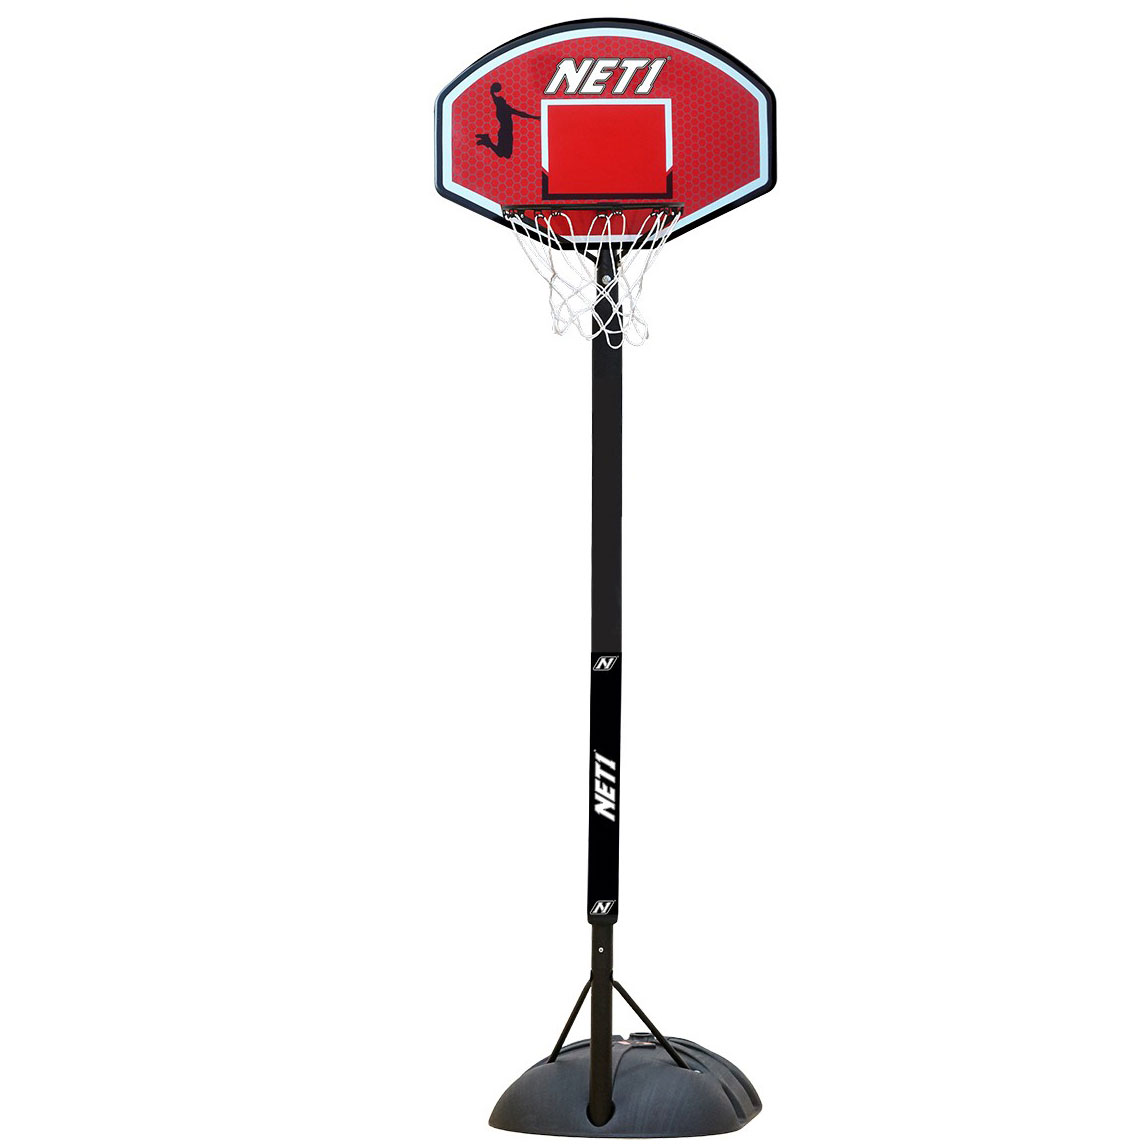 NET1 XPLODE YOUTH PORTABLE BASKETBALL SYSTEM